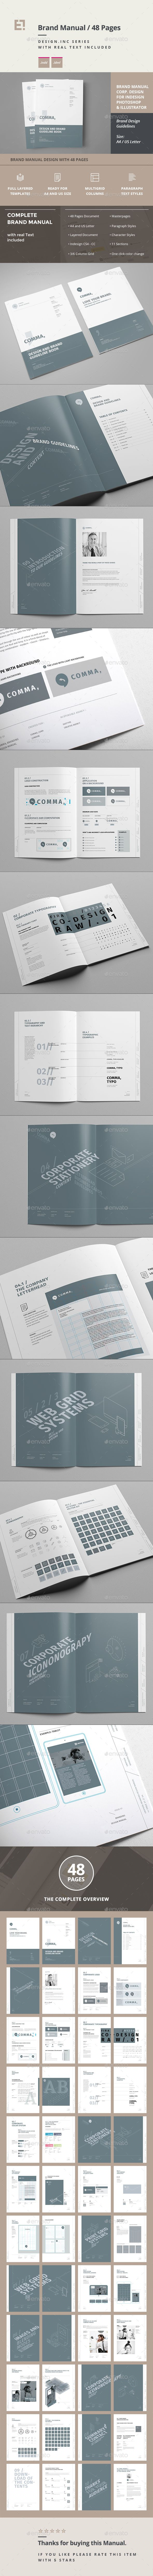 Brand Manual Template InDesign INDD. Download here: http://graphicriver.net/item/brand-manual-/15210965?ref=ksioks